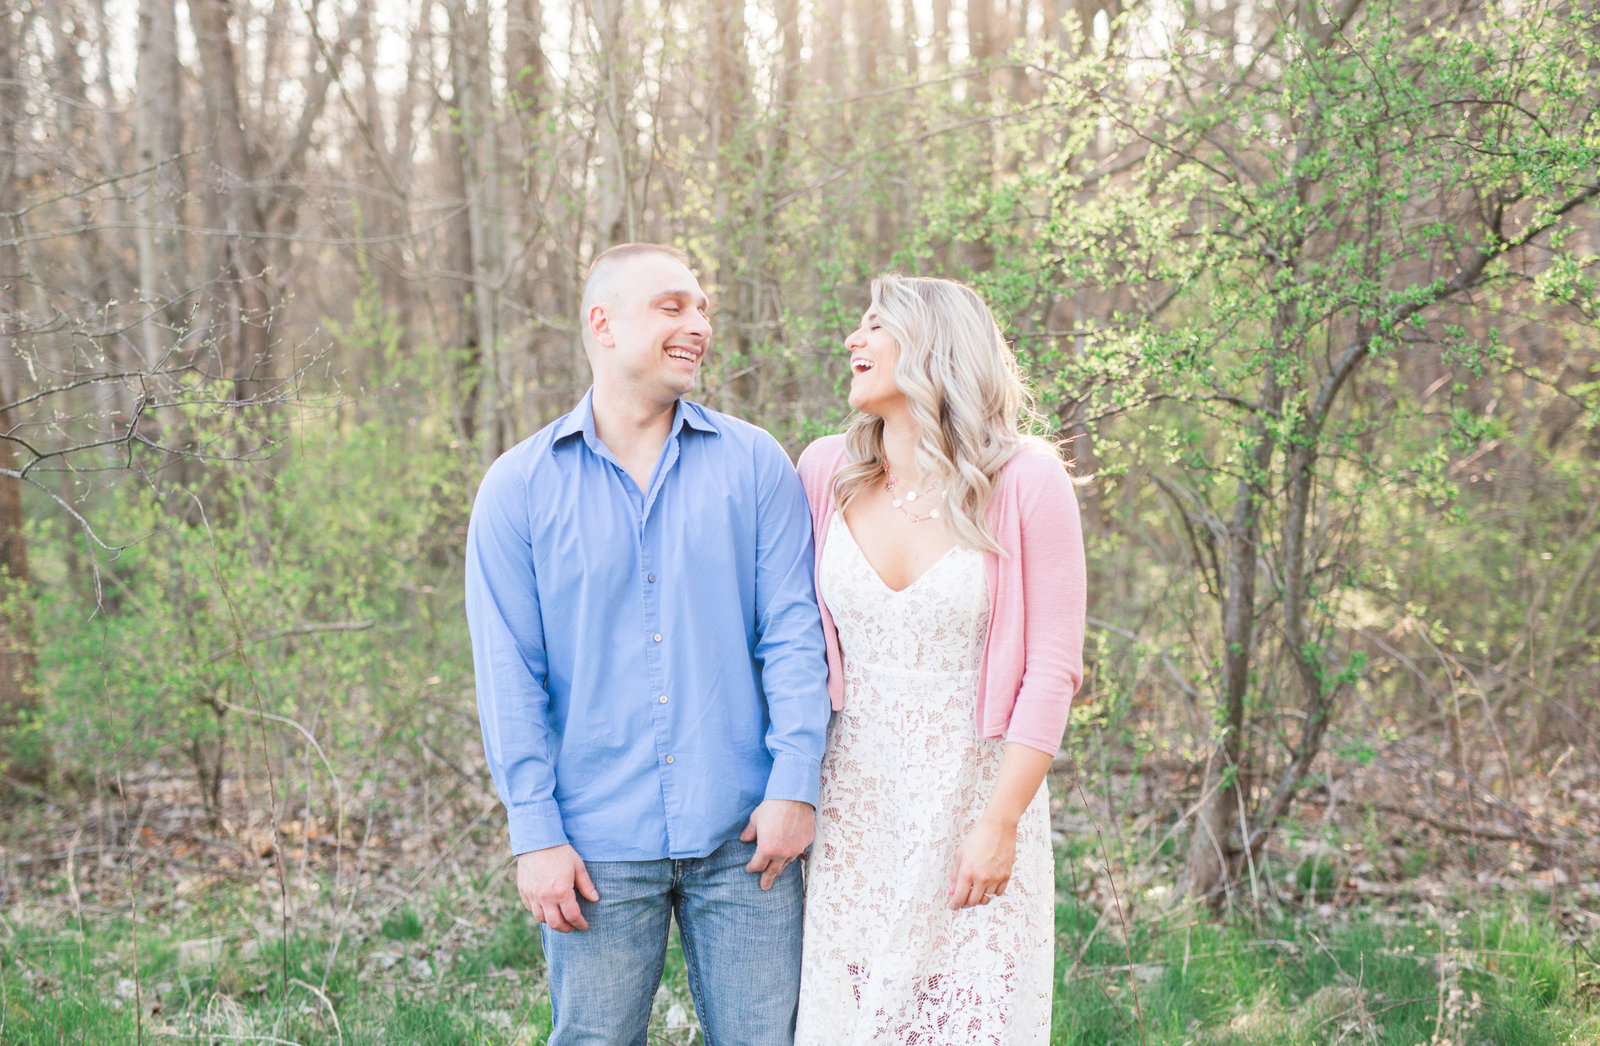 indigo-lake-engagement-session-allison-ewing-photography-003-1